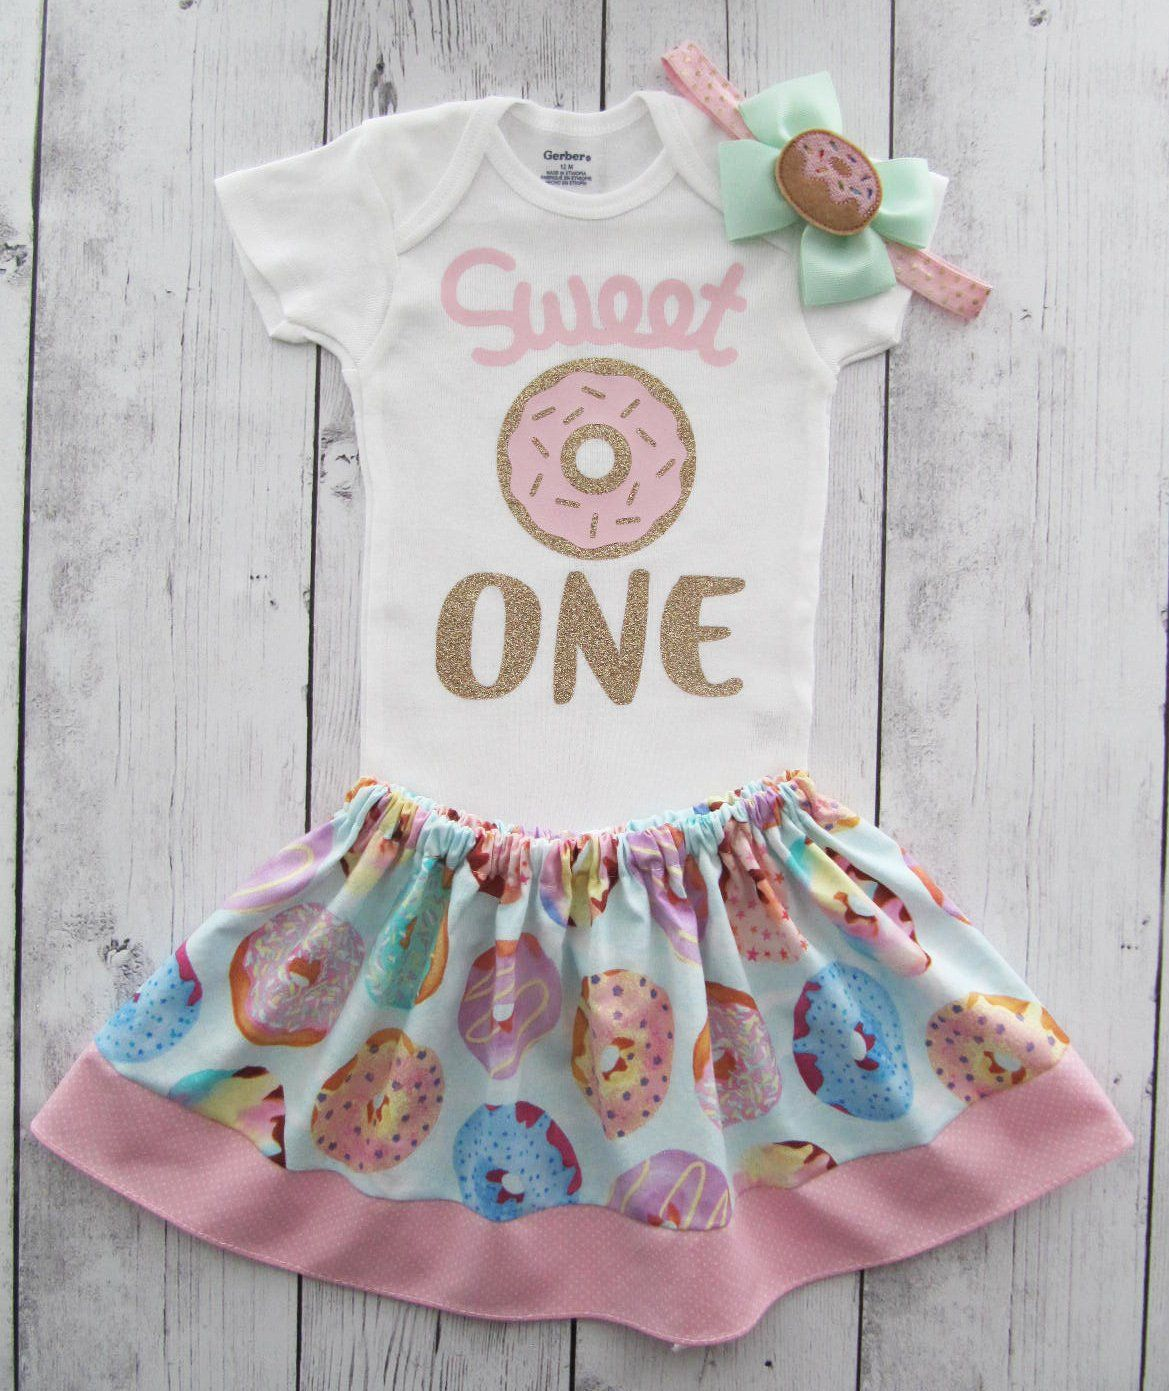 fb19507d1 Donut First Birthday Outfit for baby girl - donut grow up, sweet one, donut  first birthday party, donut 1st birthday outfit, donut shoes